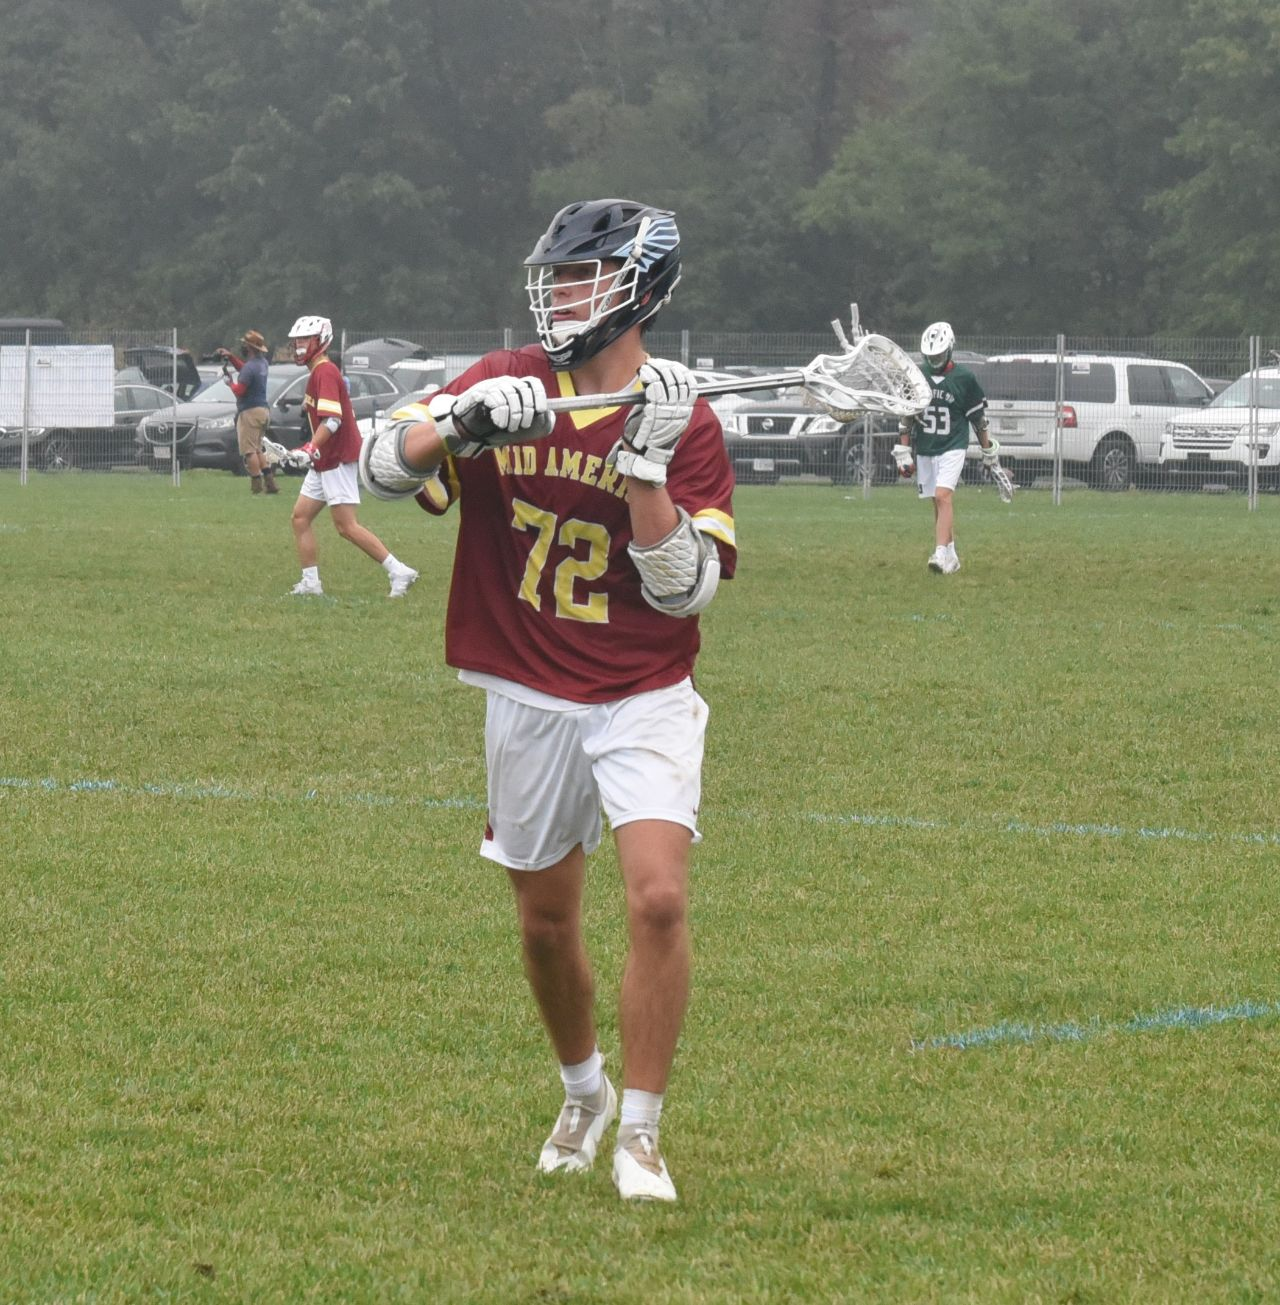 Jacob Pacheco, 2023. National All Star Games Lacrosse